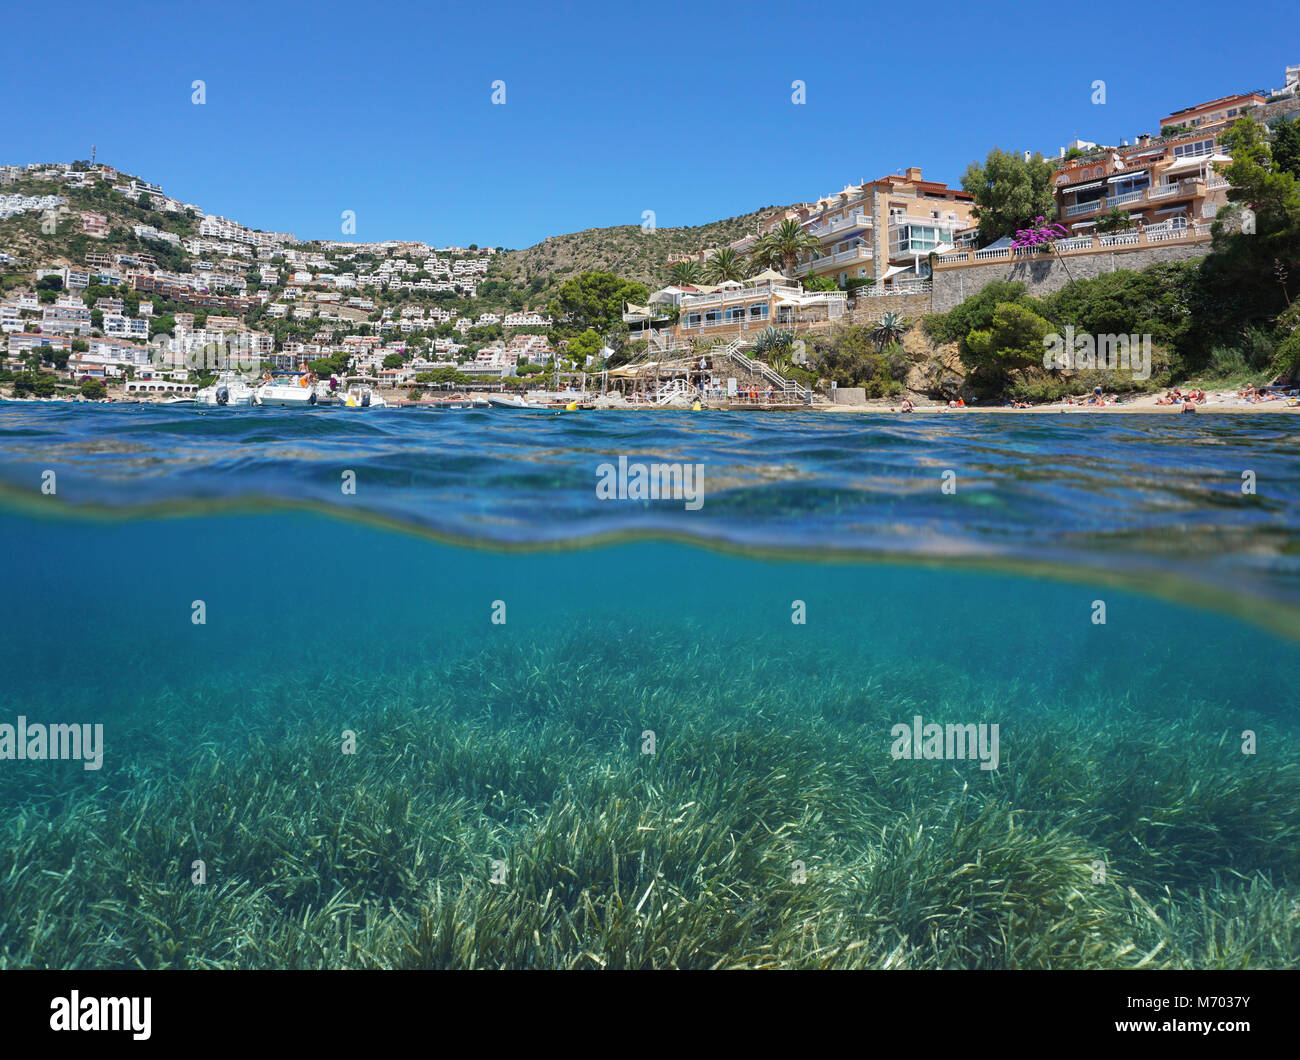 Seaside town in Spain on the Costa Brava and seagrass meadow underwater, split view above and below water surface, - Stock Image